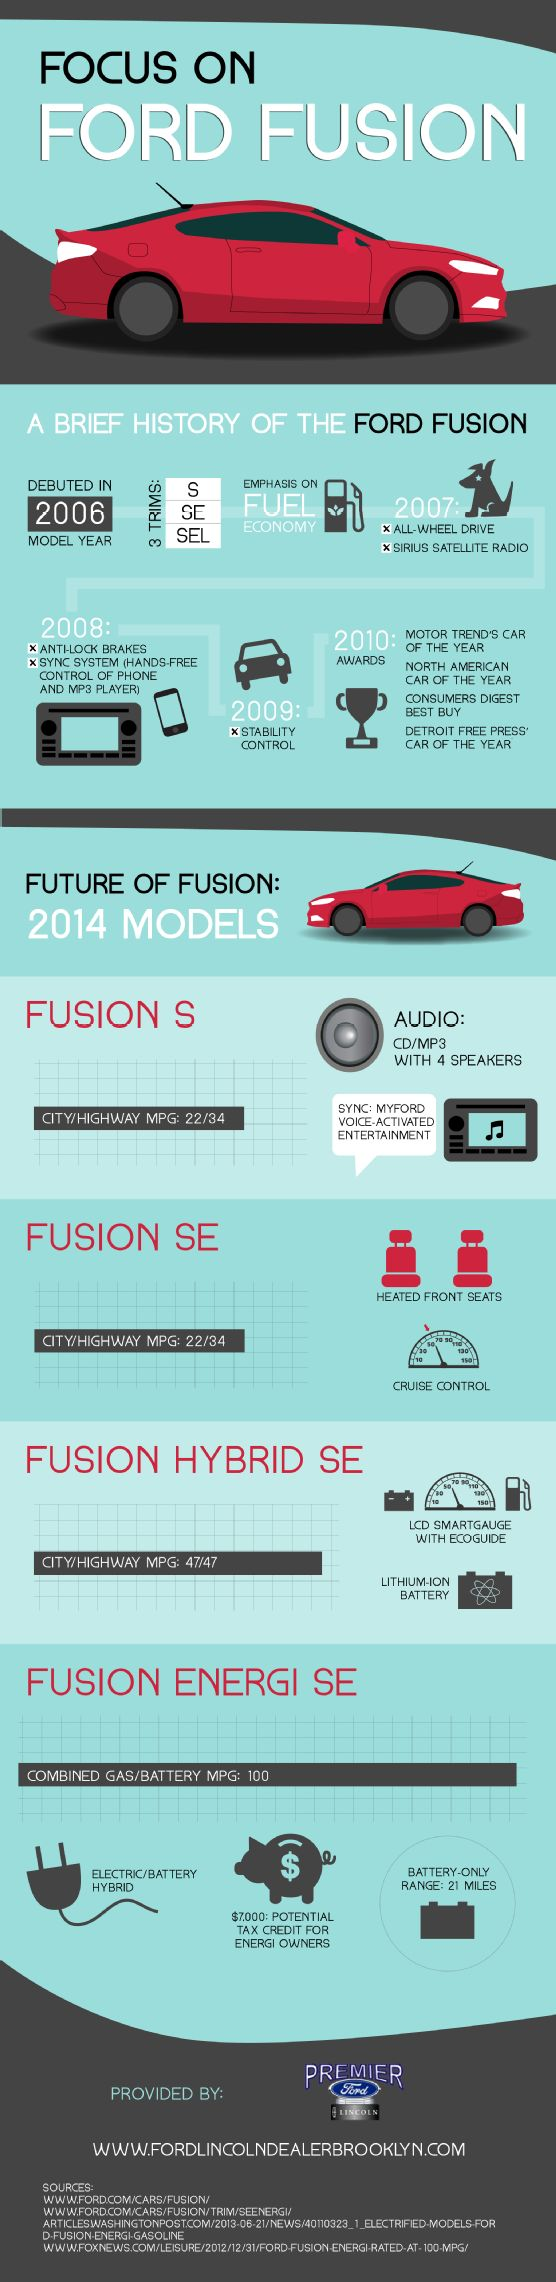 The 2014 Ford Fusion S offers 22 mpg in the city and 34 mpg on the highway. This model also features a CD and MP3 player with four speakers. Read about other impressive features by checking out this Brooklyn Ford dealer infographic.